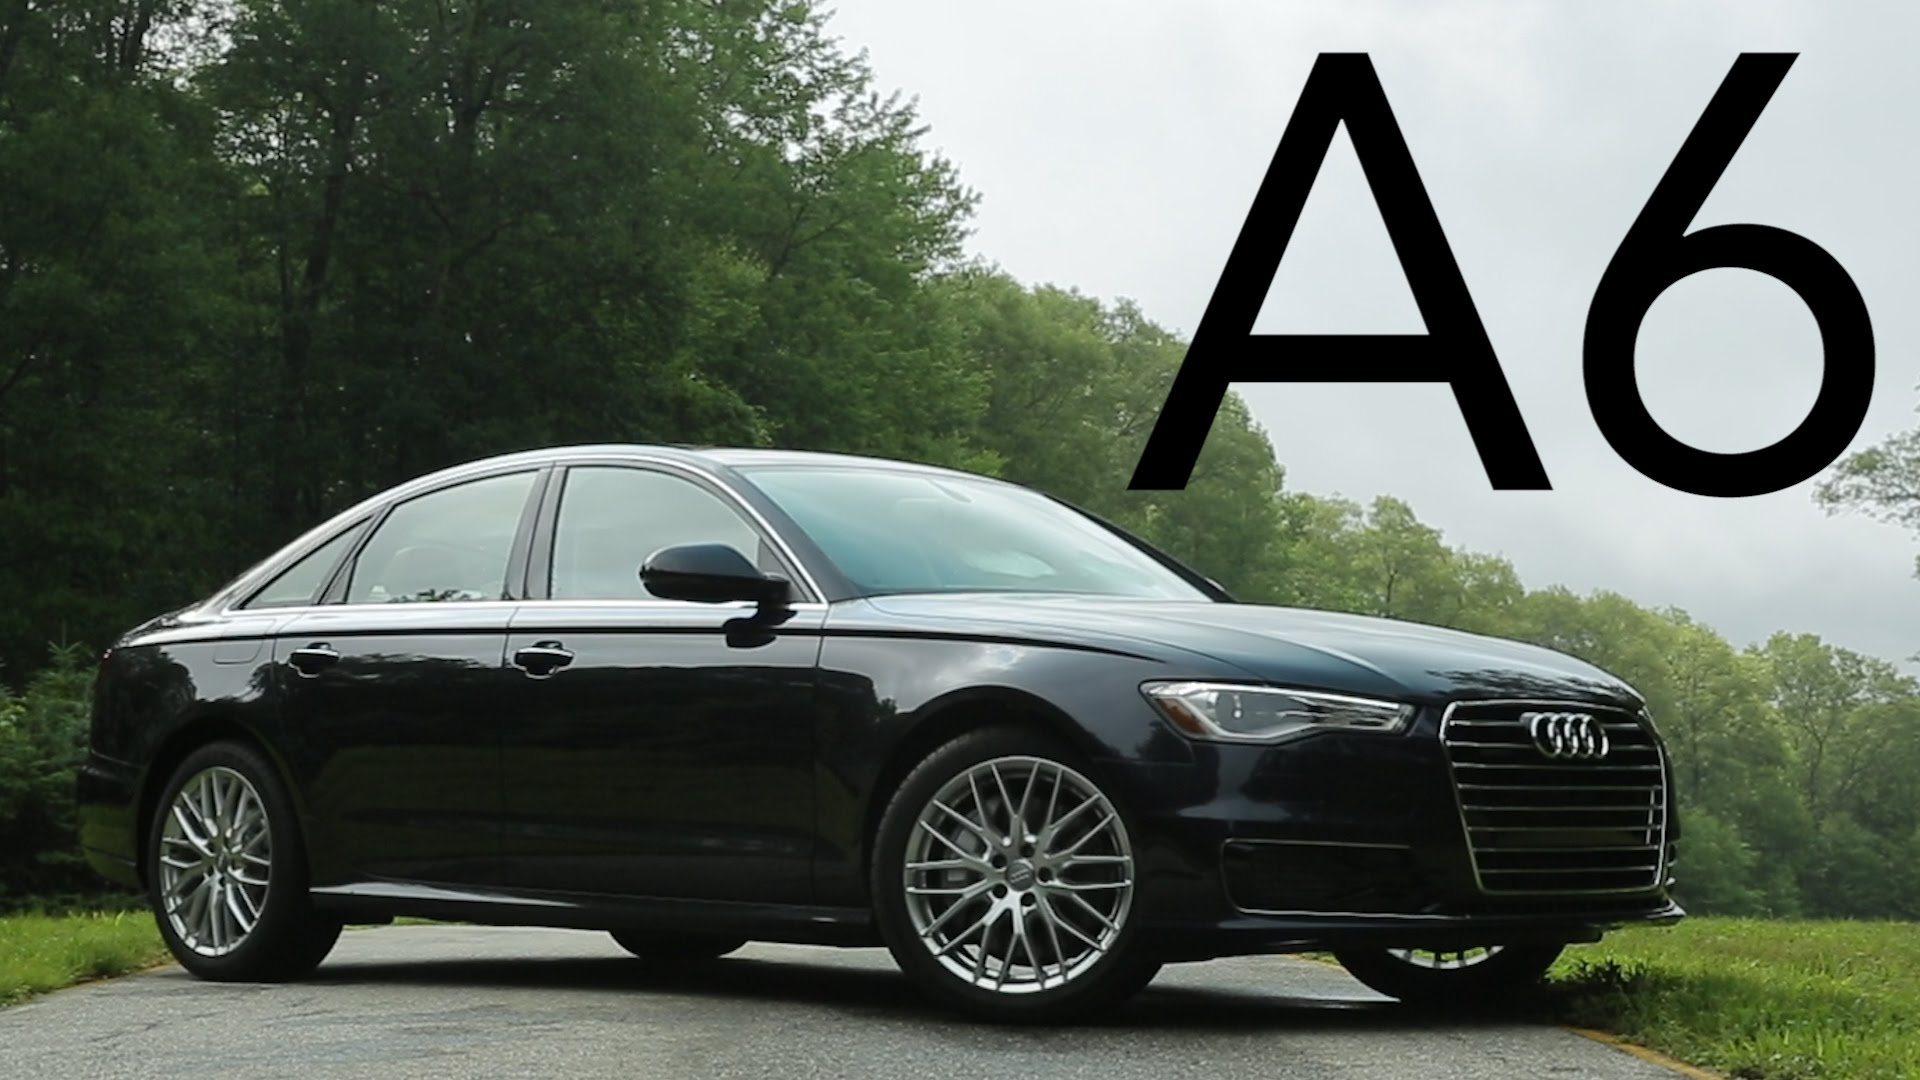 Nice wallpapers Audi A6 1920x1080px